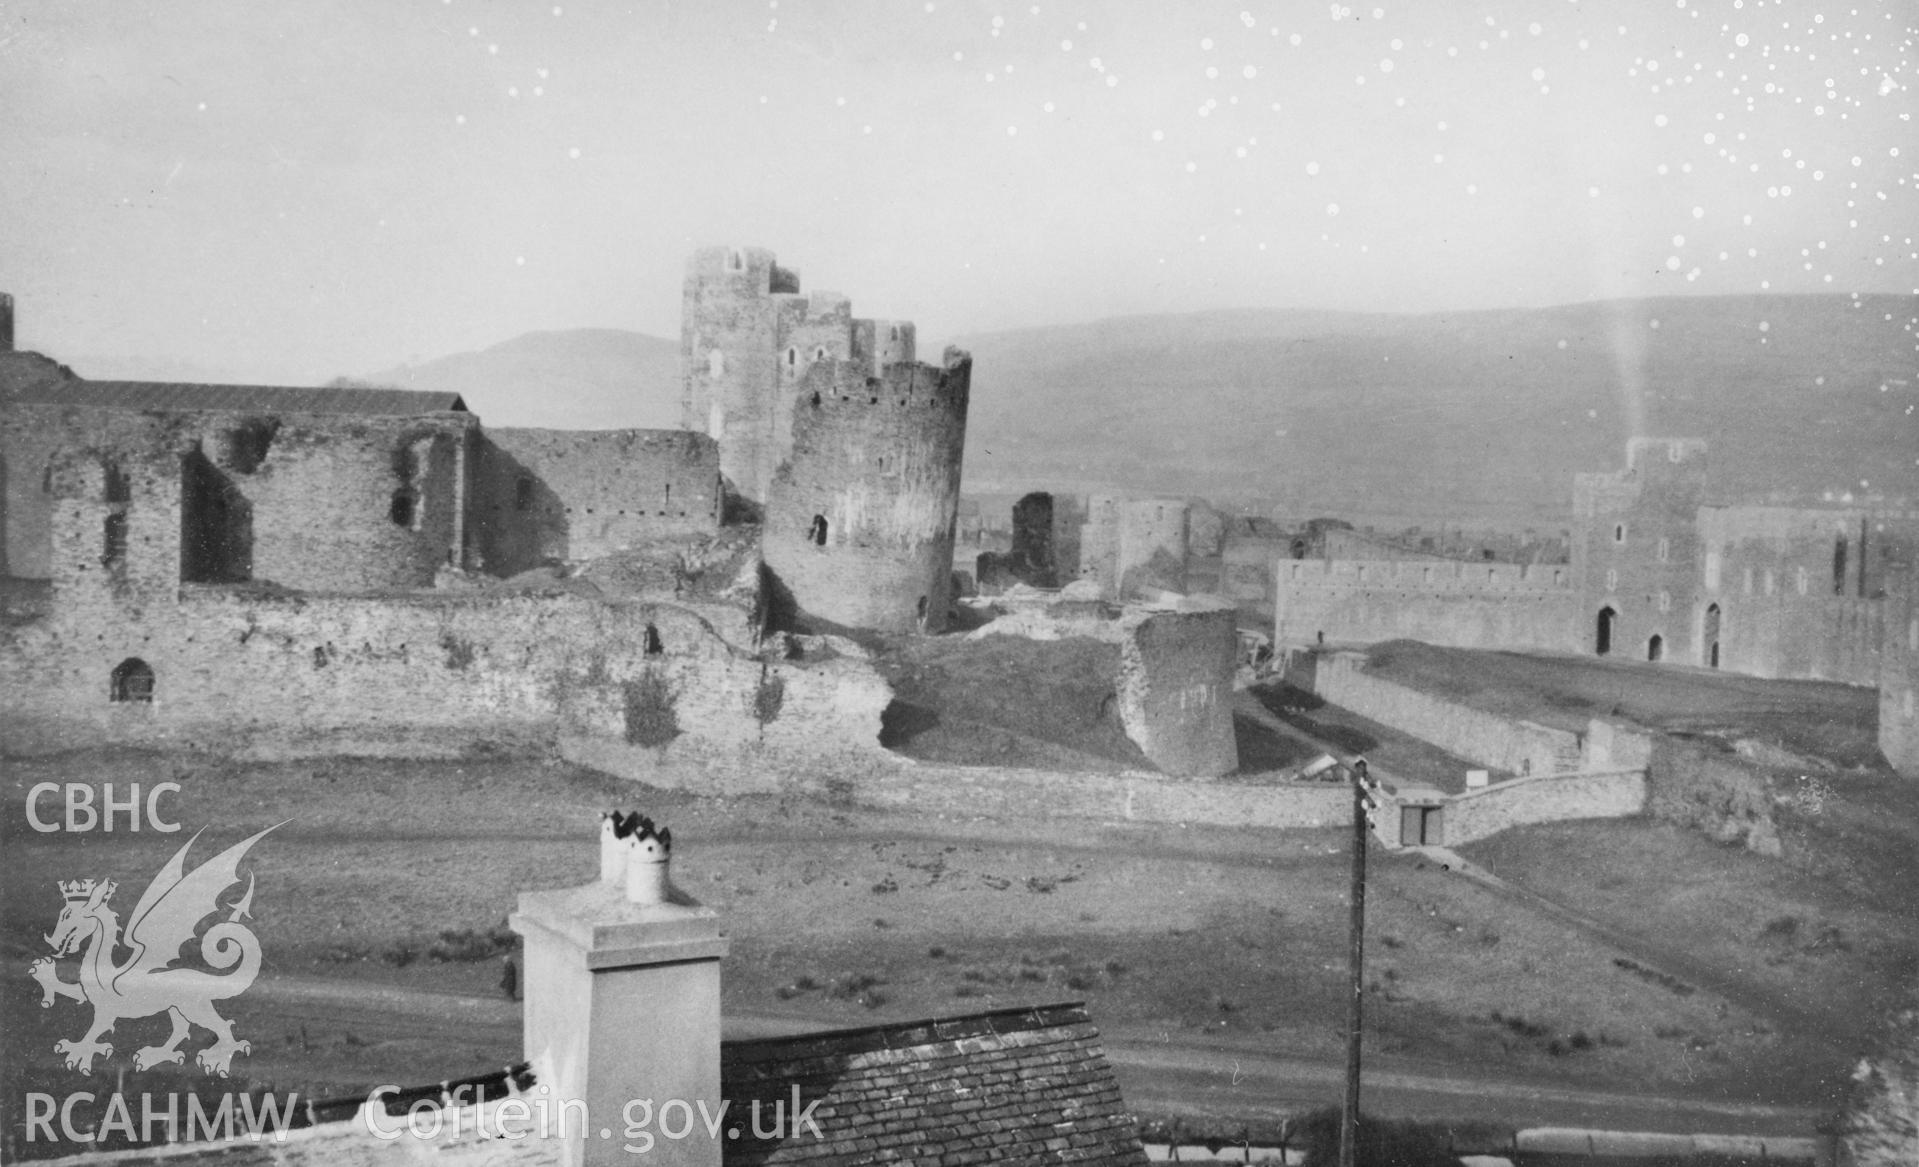 Black and white acetate negative showing Caerphilly Castle.